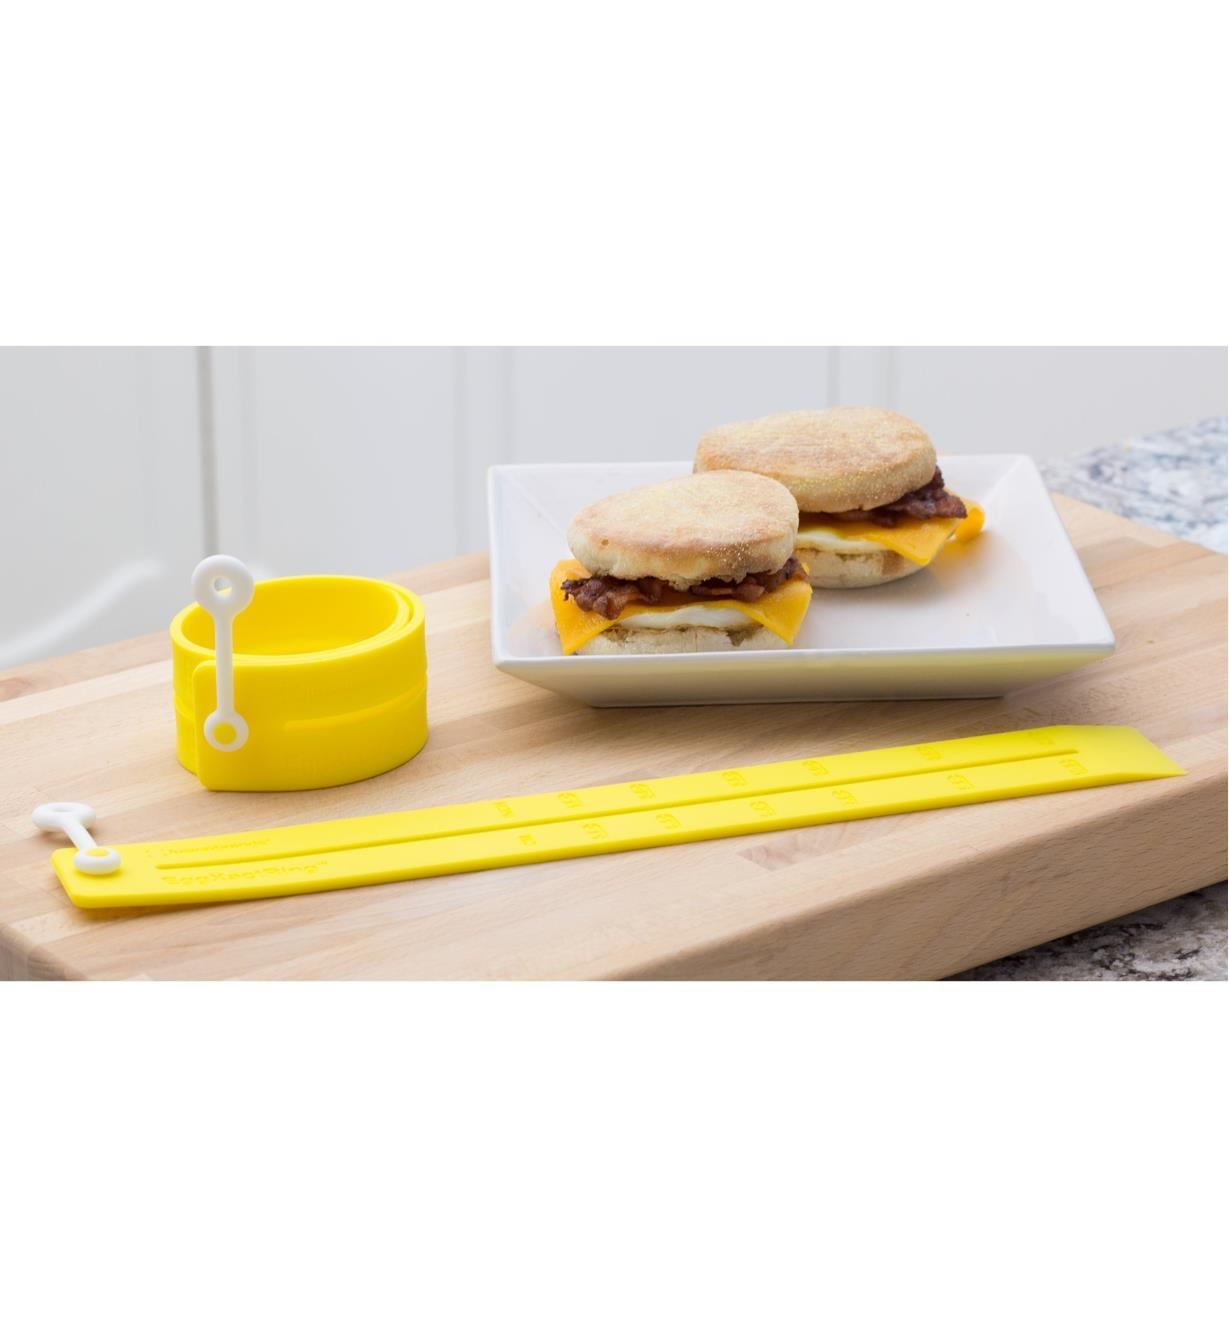 Two Adjustable Silicone Egg Rings beside two breakfast sandwiches made with eggs, bacon and cheese